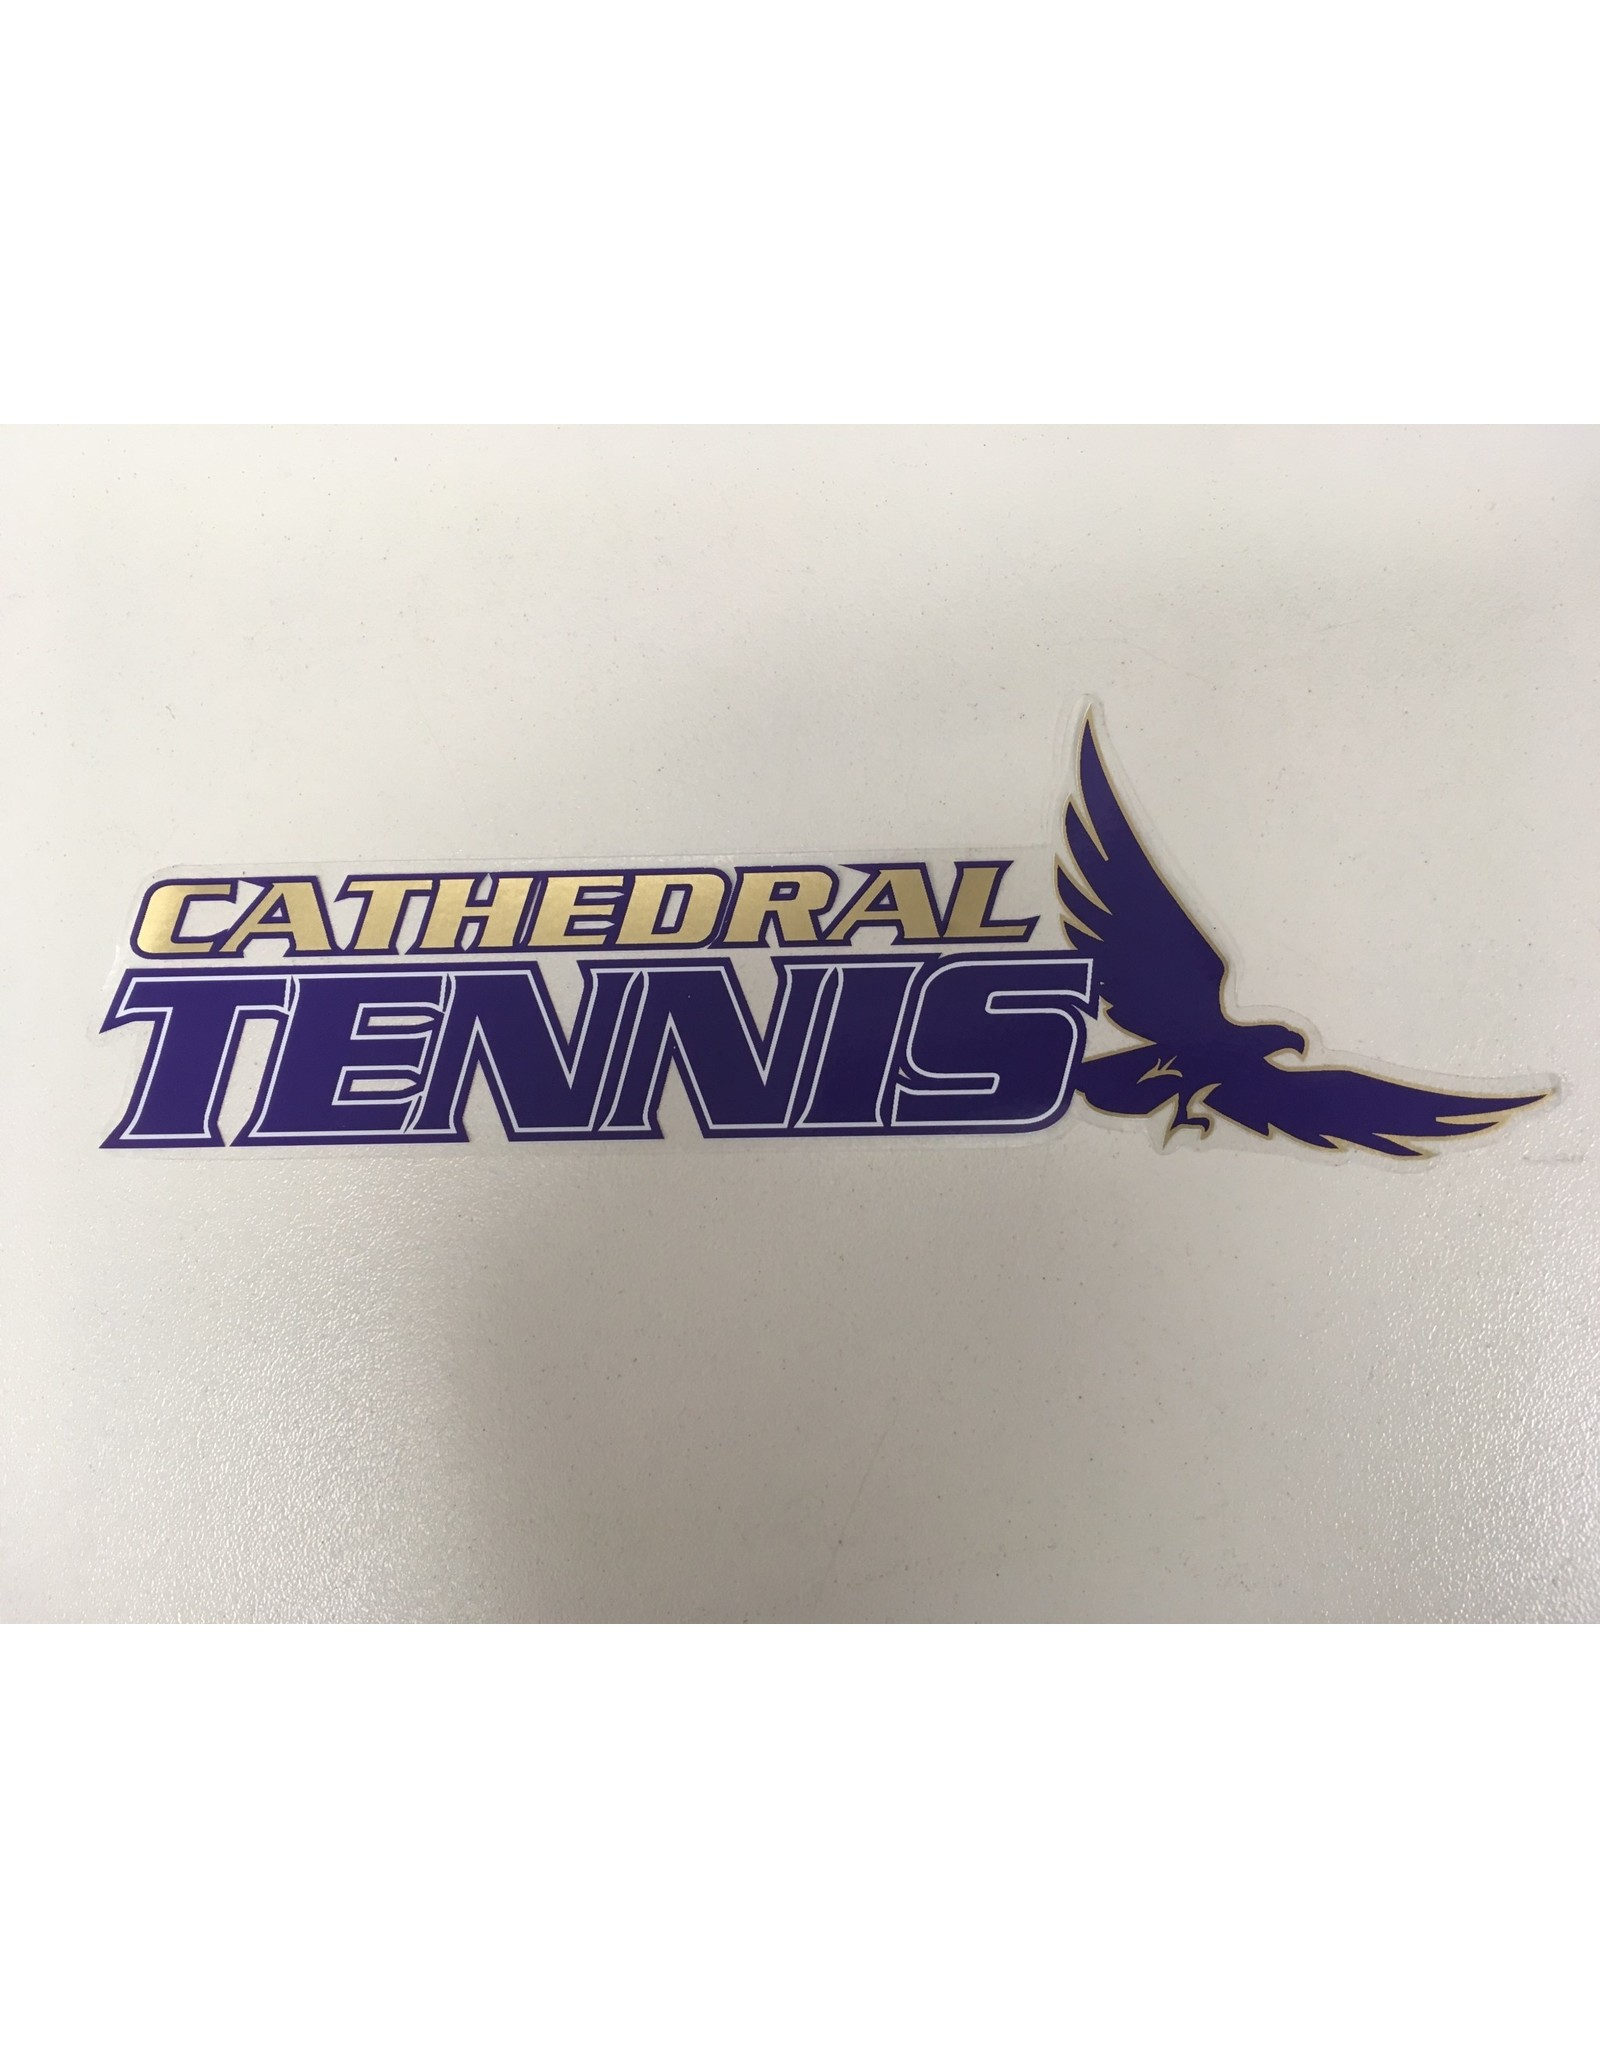 DECAL-CATHEDRAL TENNIS